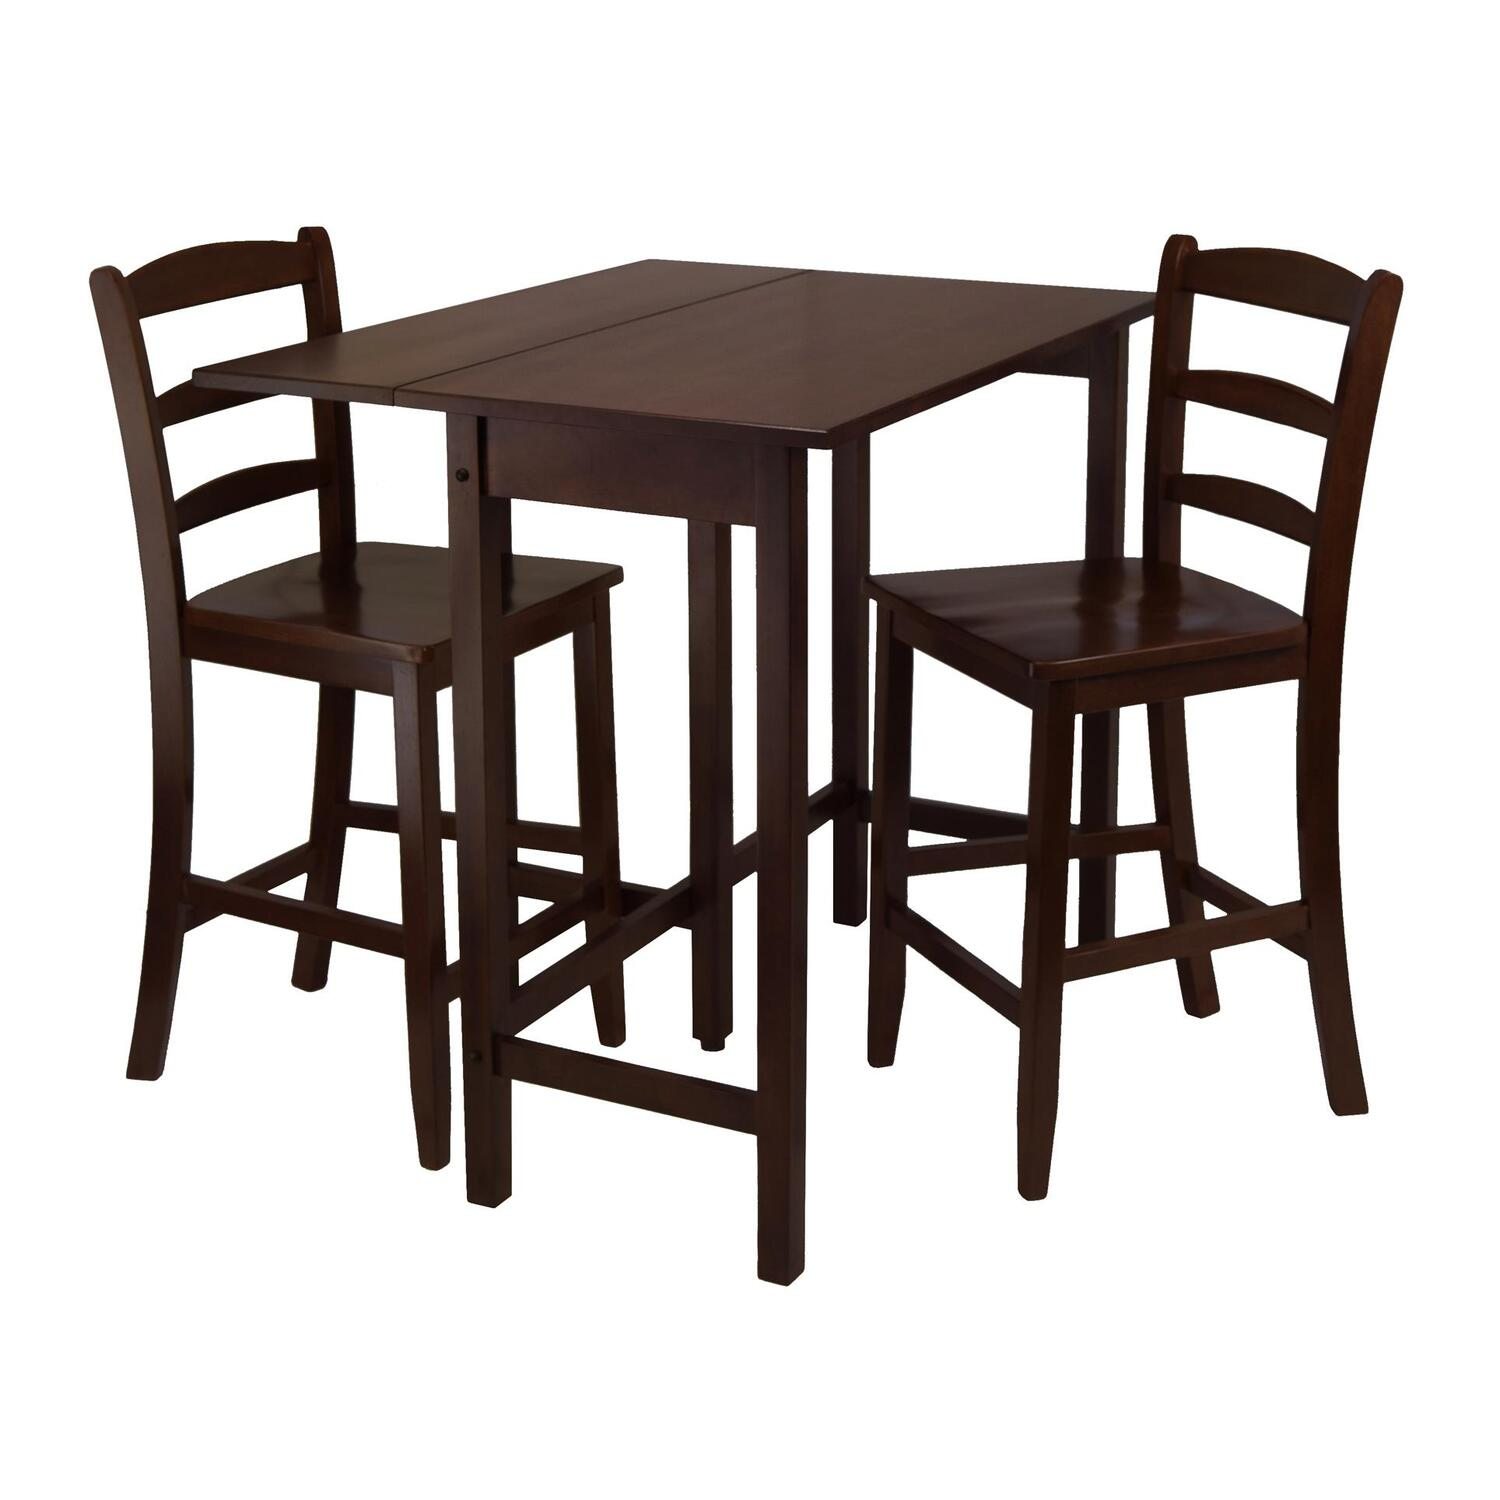 Table Top High Chair Lynnwood 3pc Drop Leaf High Table With 2 Counter Ladder